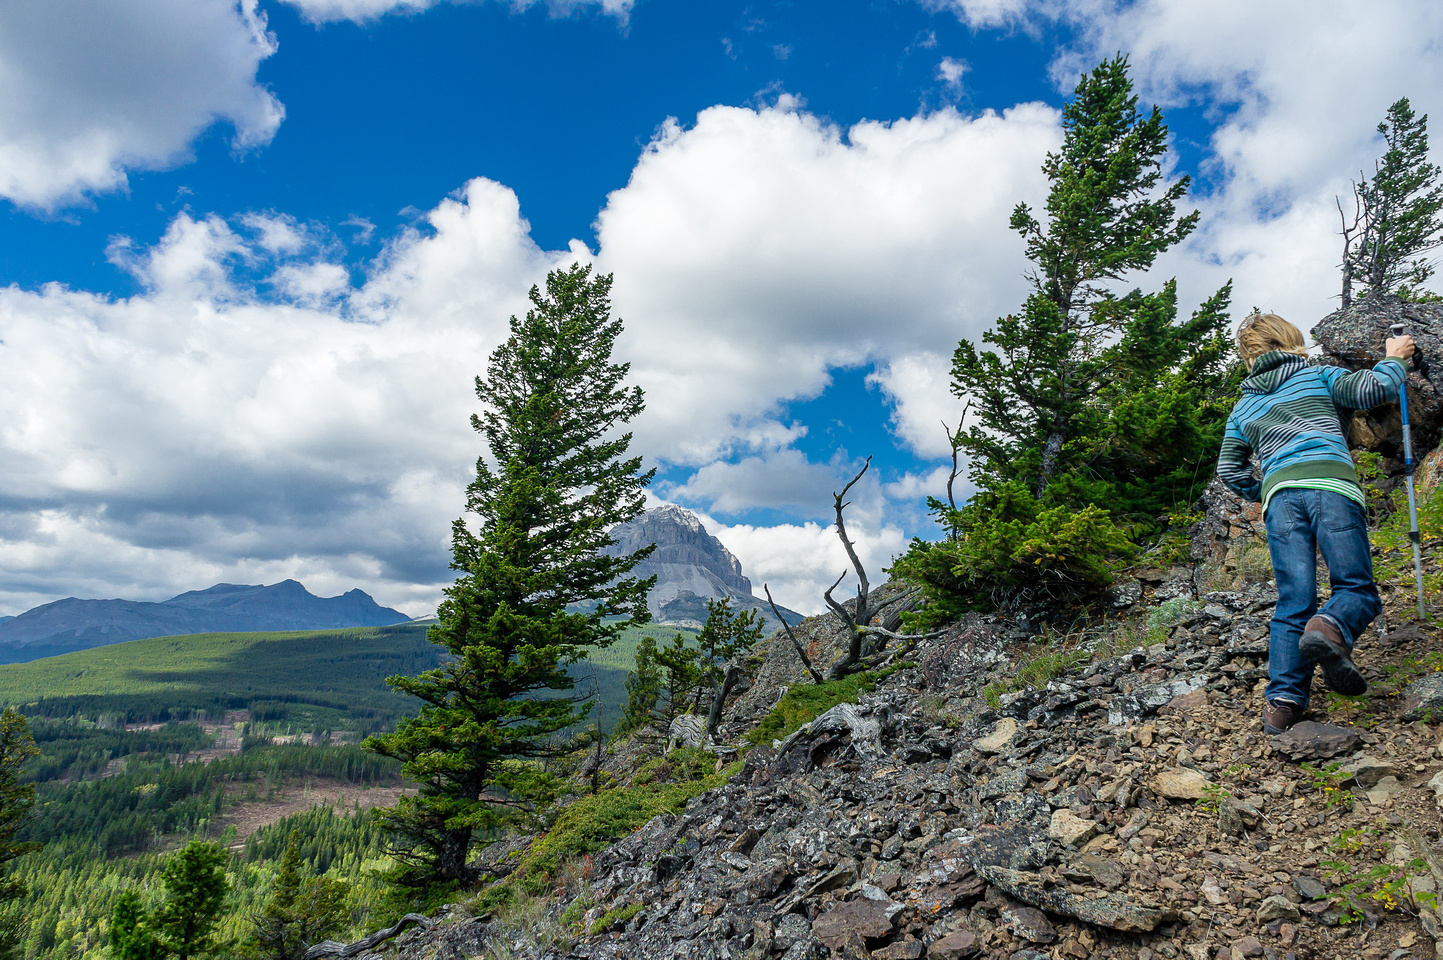 The main reason to do this scramble is for the views of Crowsnest Mountain.